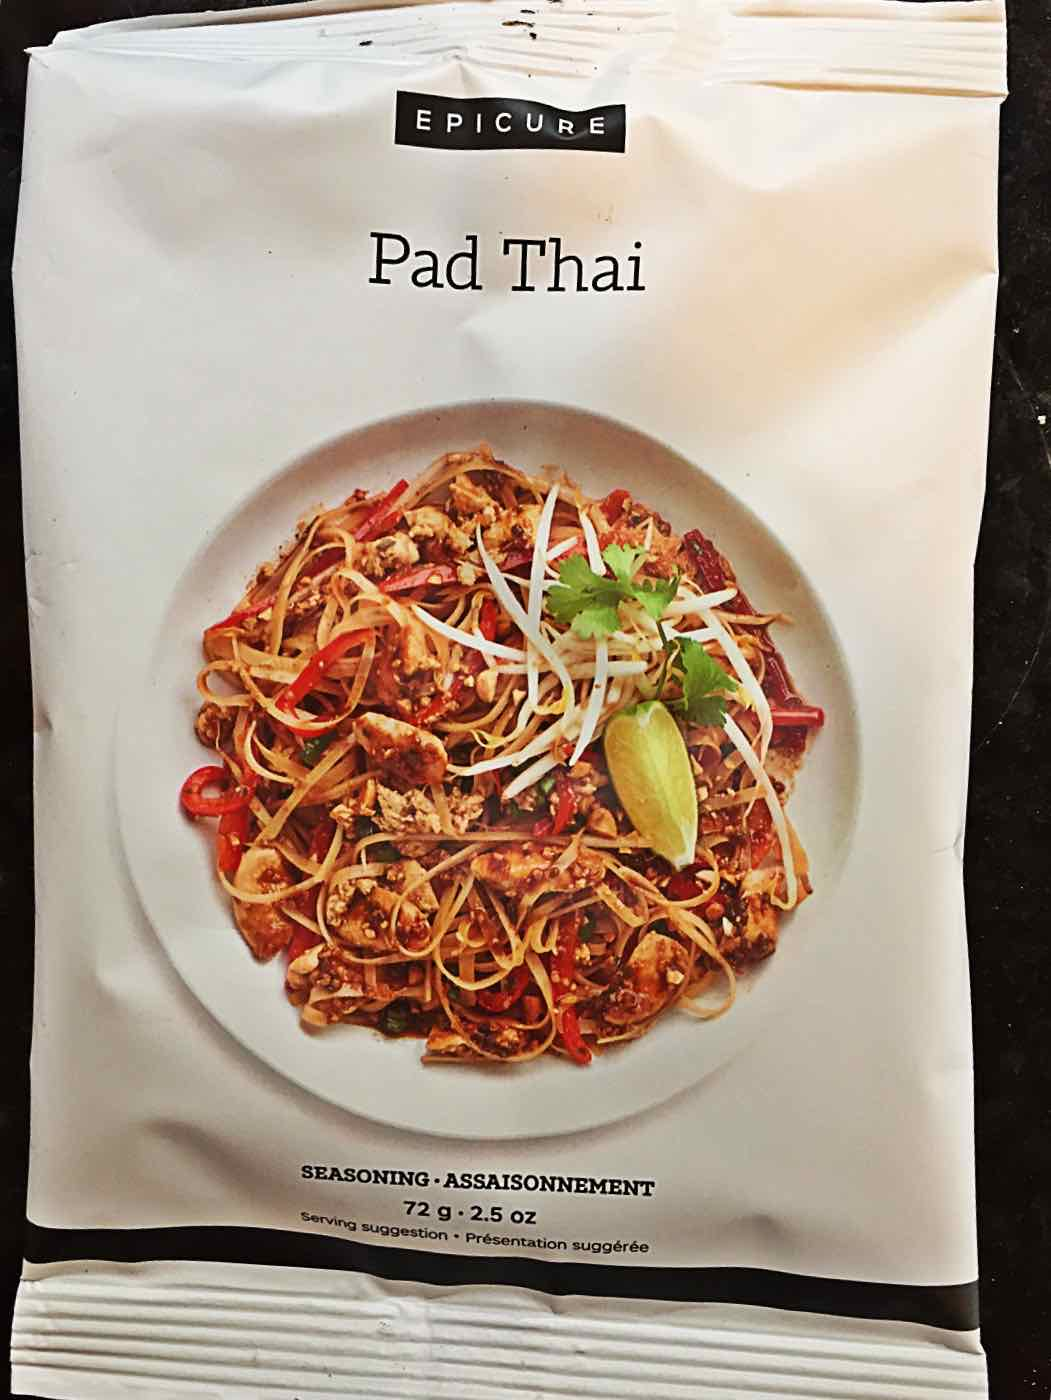 Pad Thai Mix from Canadian Epicure